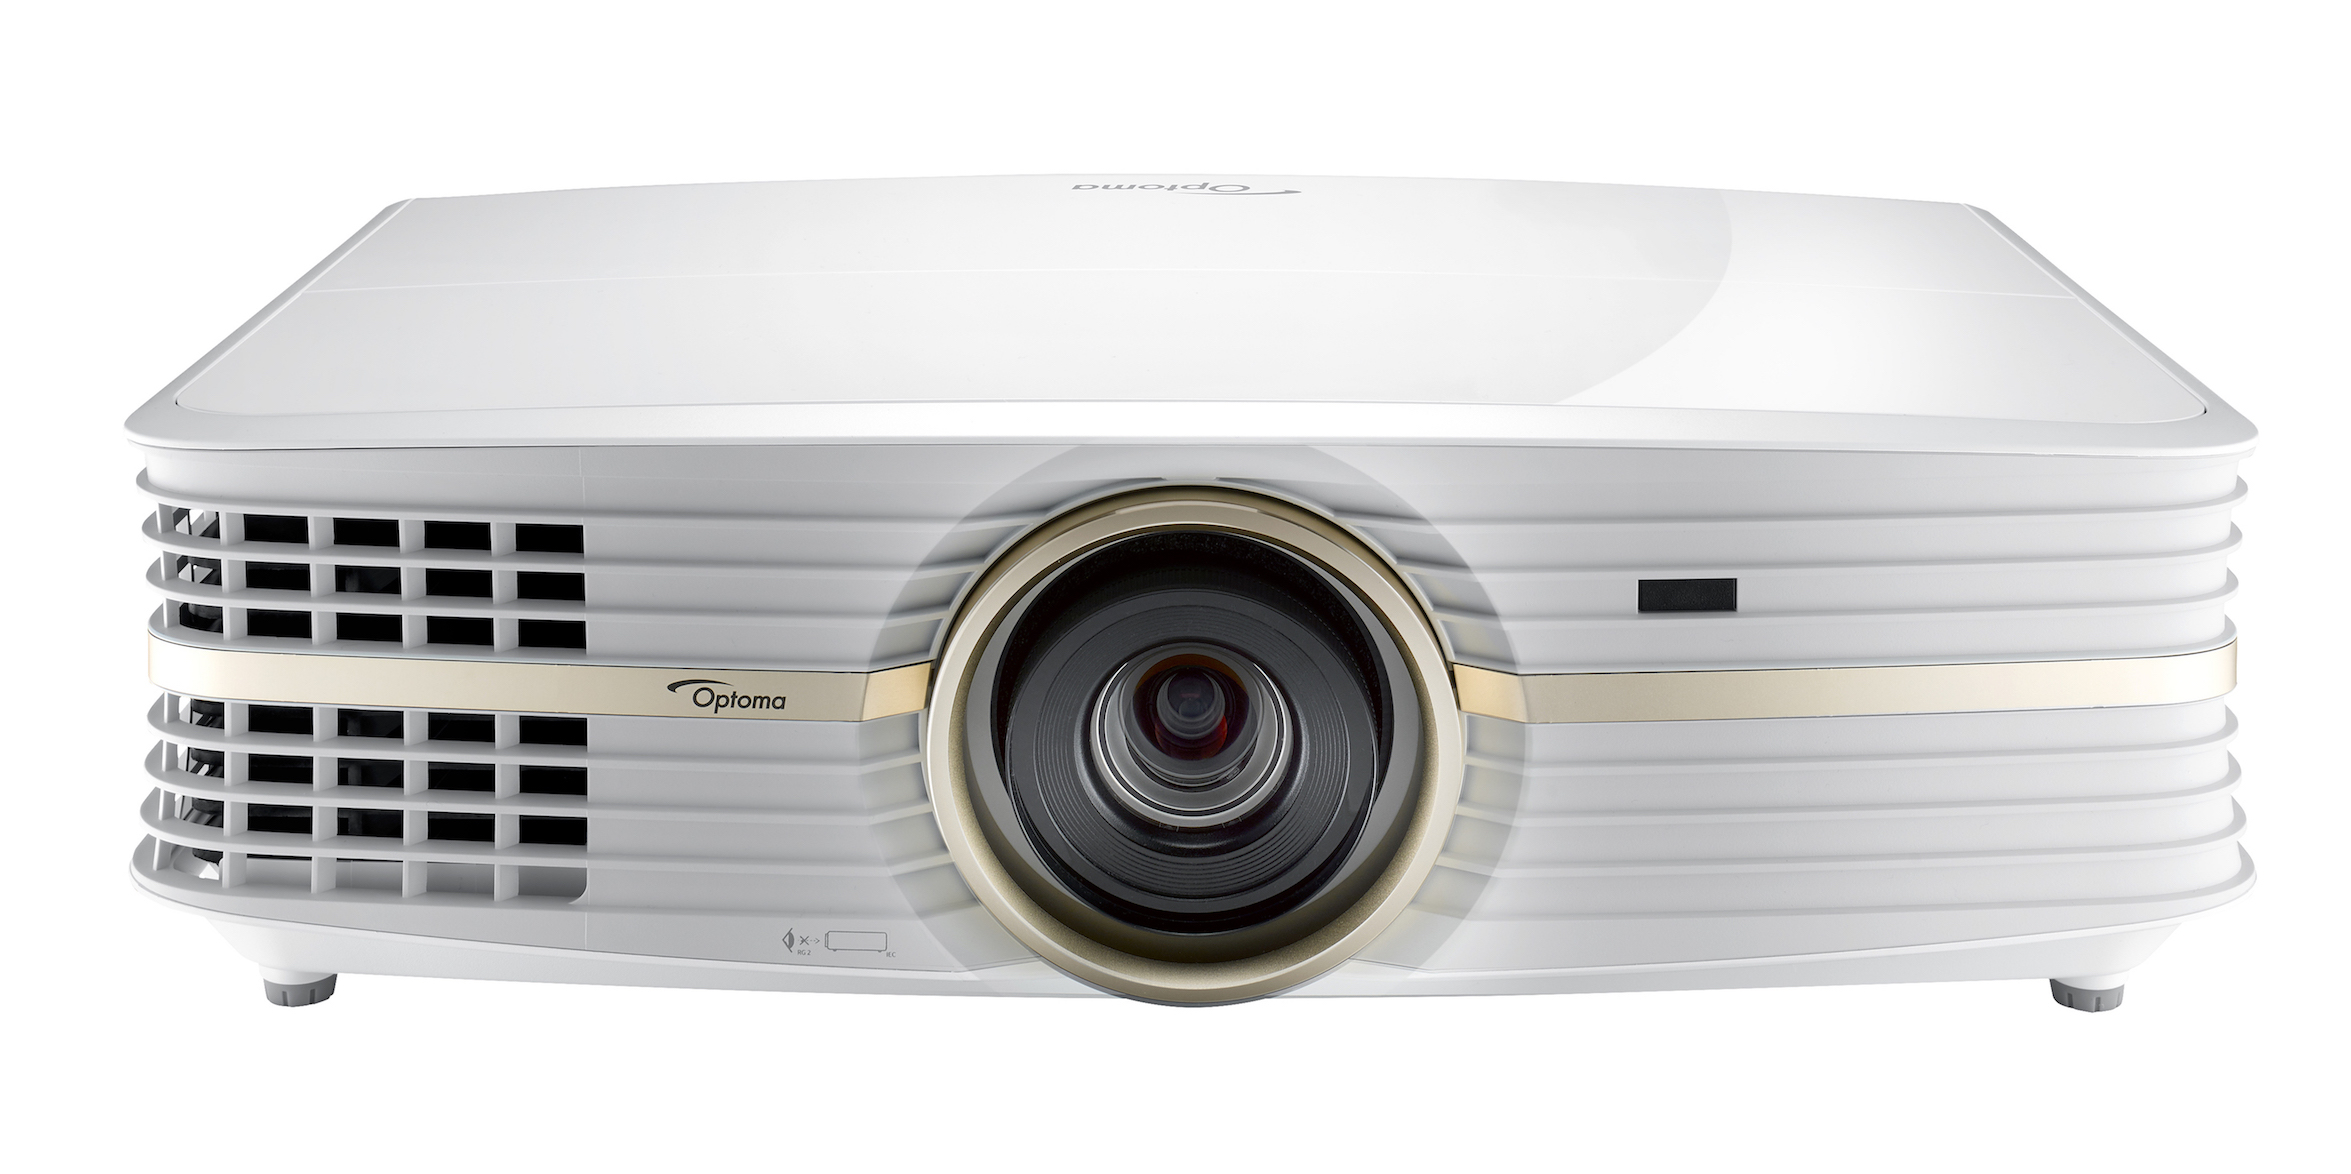 Optoma Launches UHD51A, UHD51 and UHD50 4K Projectors